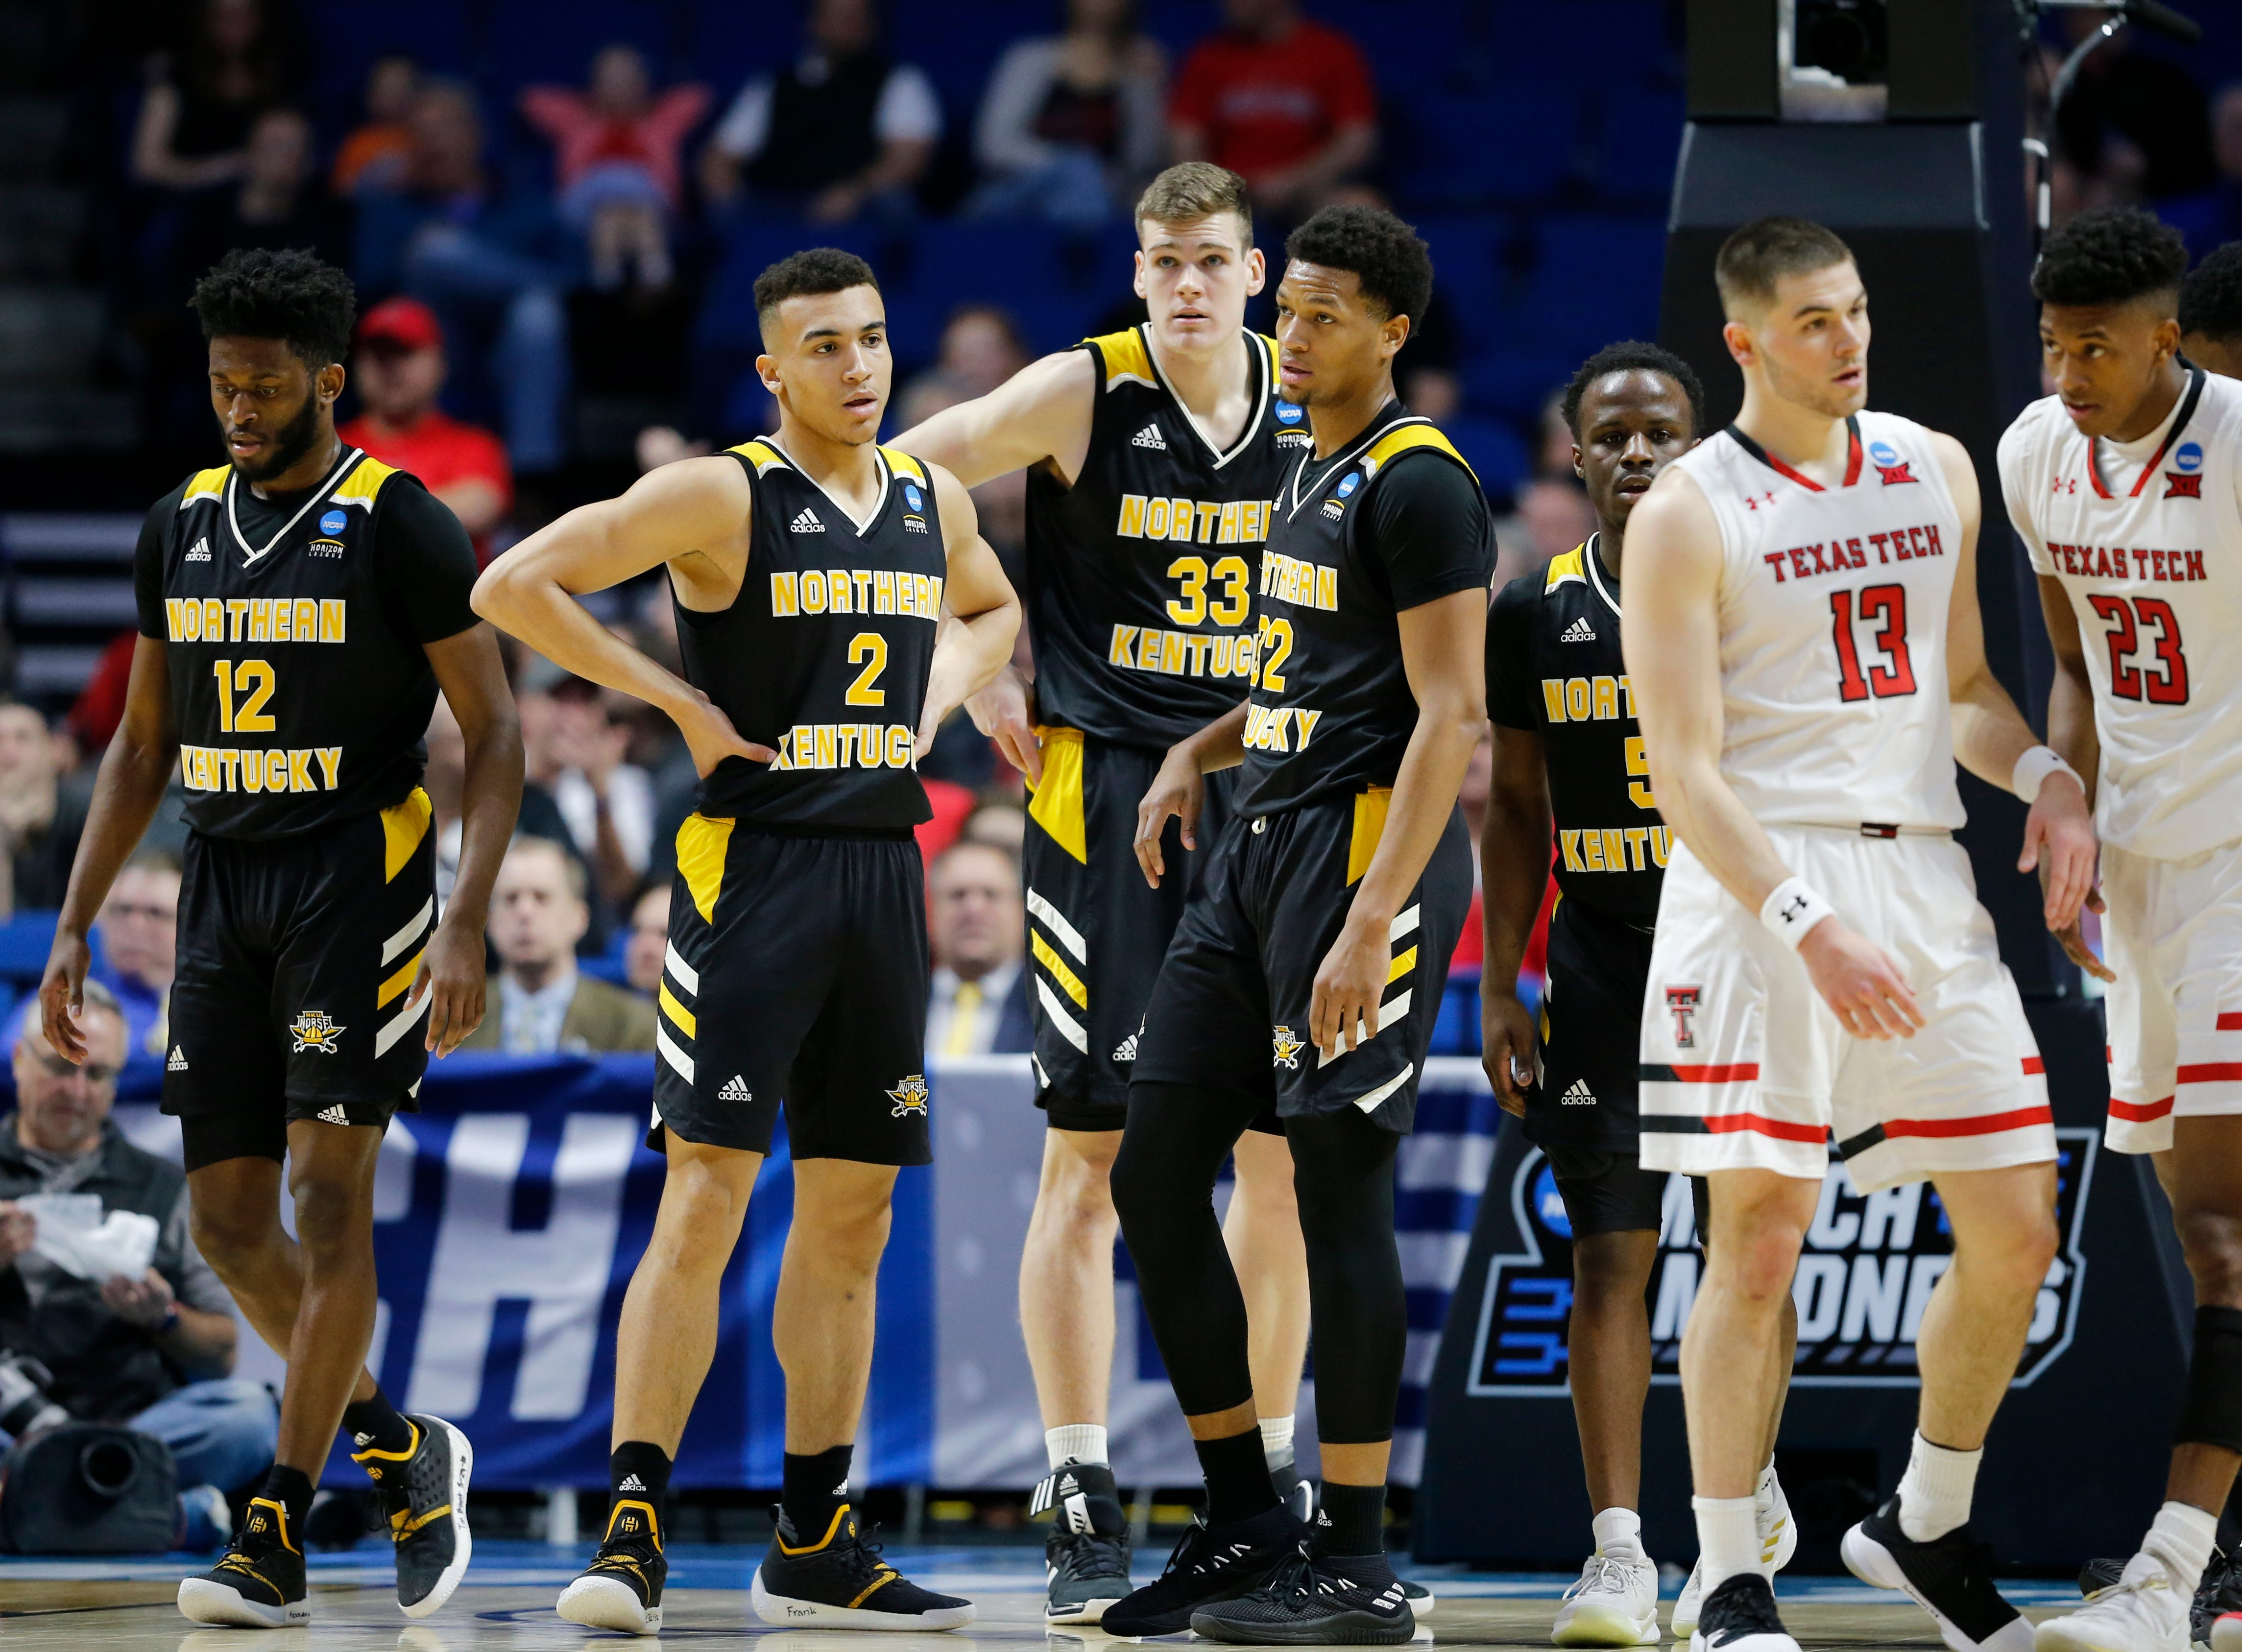 The Northern Kentucky Norse gather as play resumes in the first half of the NCAA Tournament First Round game between the 14-seeded Northern Kentucky Norse and the 3-seeded Texas Tech Red Raiders the BOK Center in downtown Tulsa on Friday, March 22, 2019. Texas Tech led 30-26 at halftime.